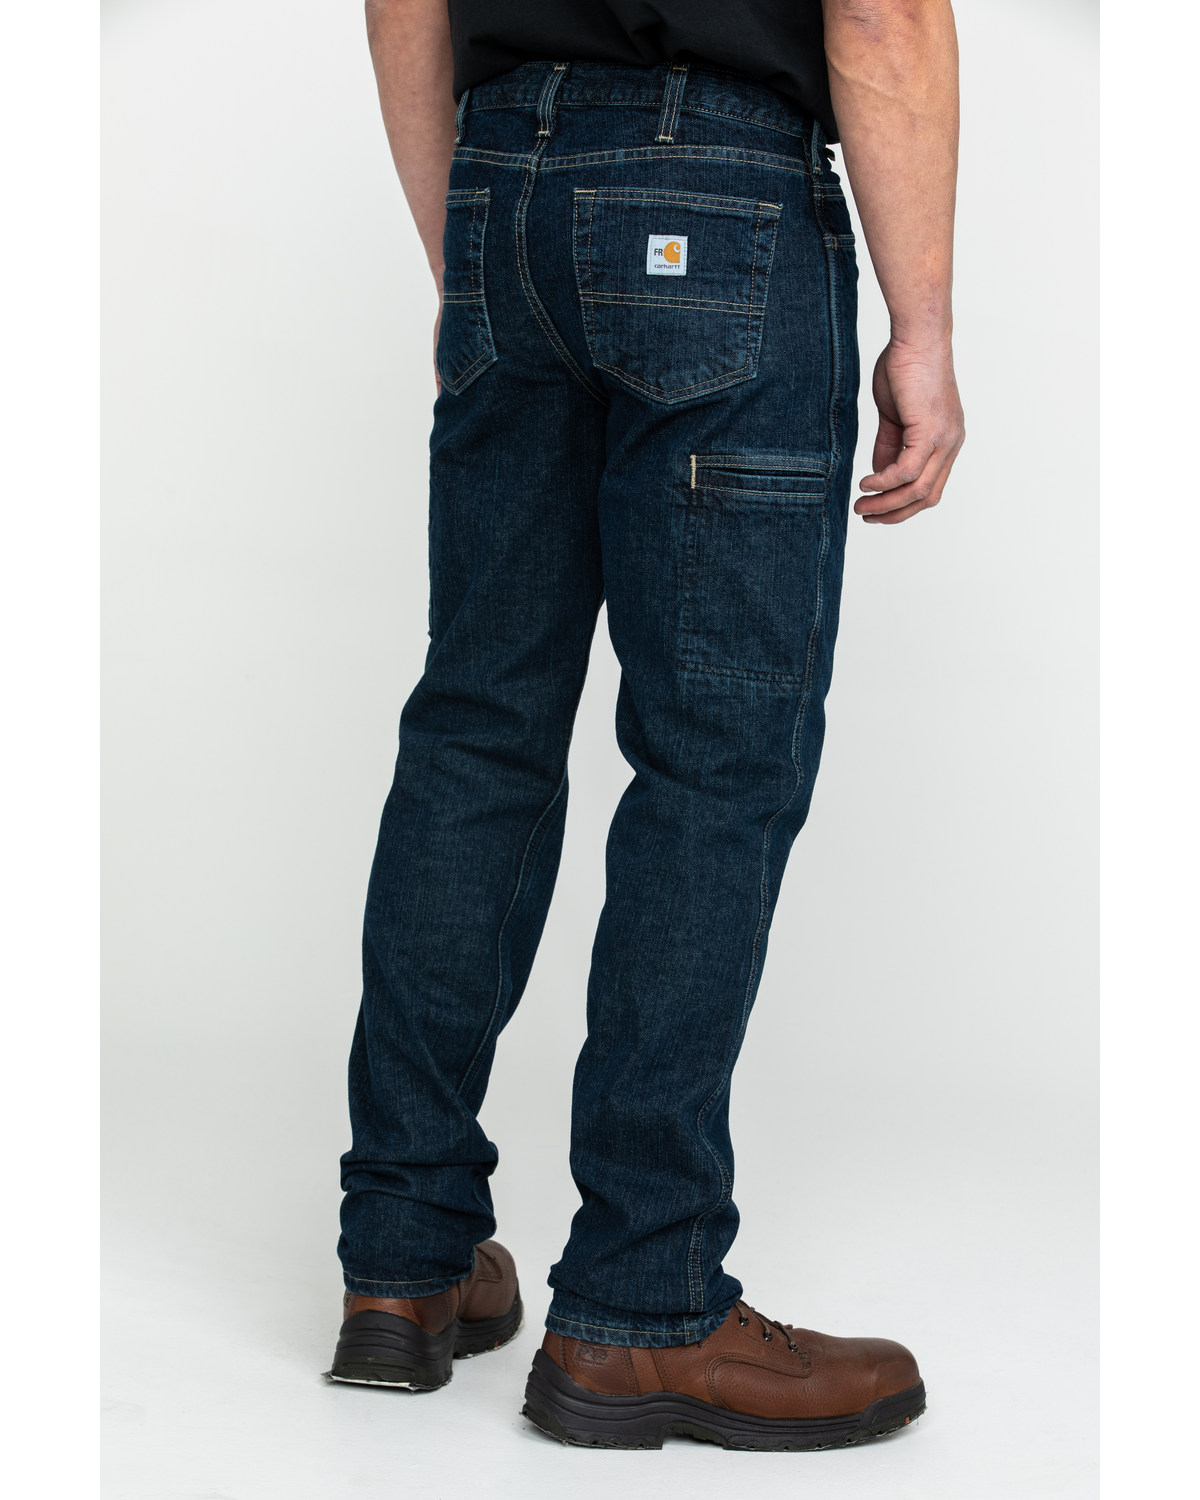 1f9c6558 Zoomed Image Carhartt Men's FR Rugged Flex Relaxed Fit Work Jeans , Indigo,  ...